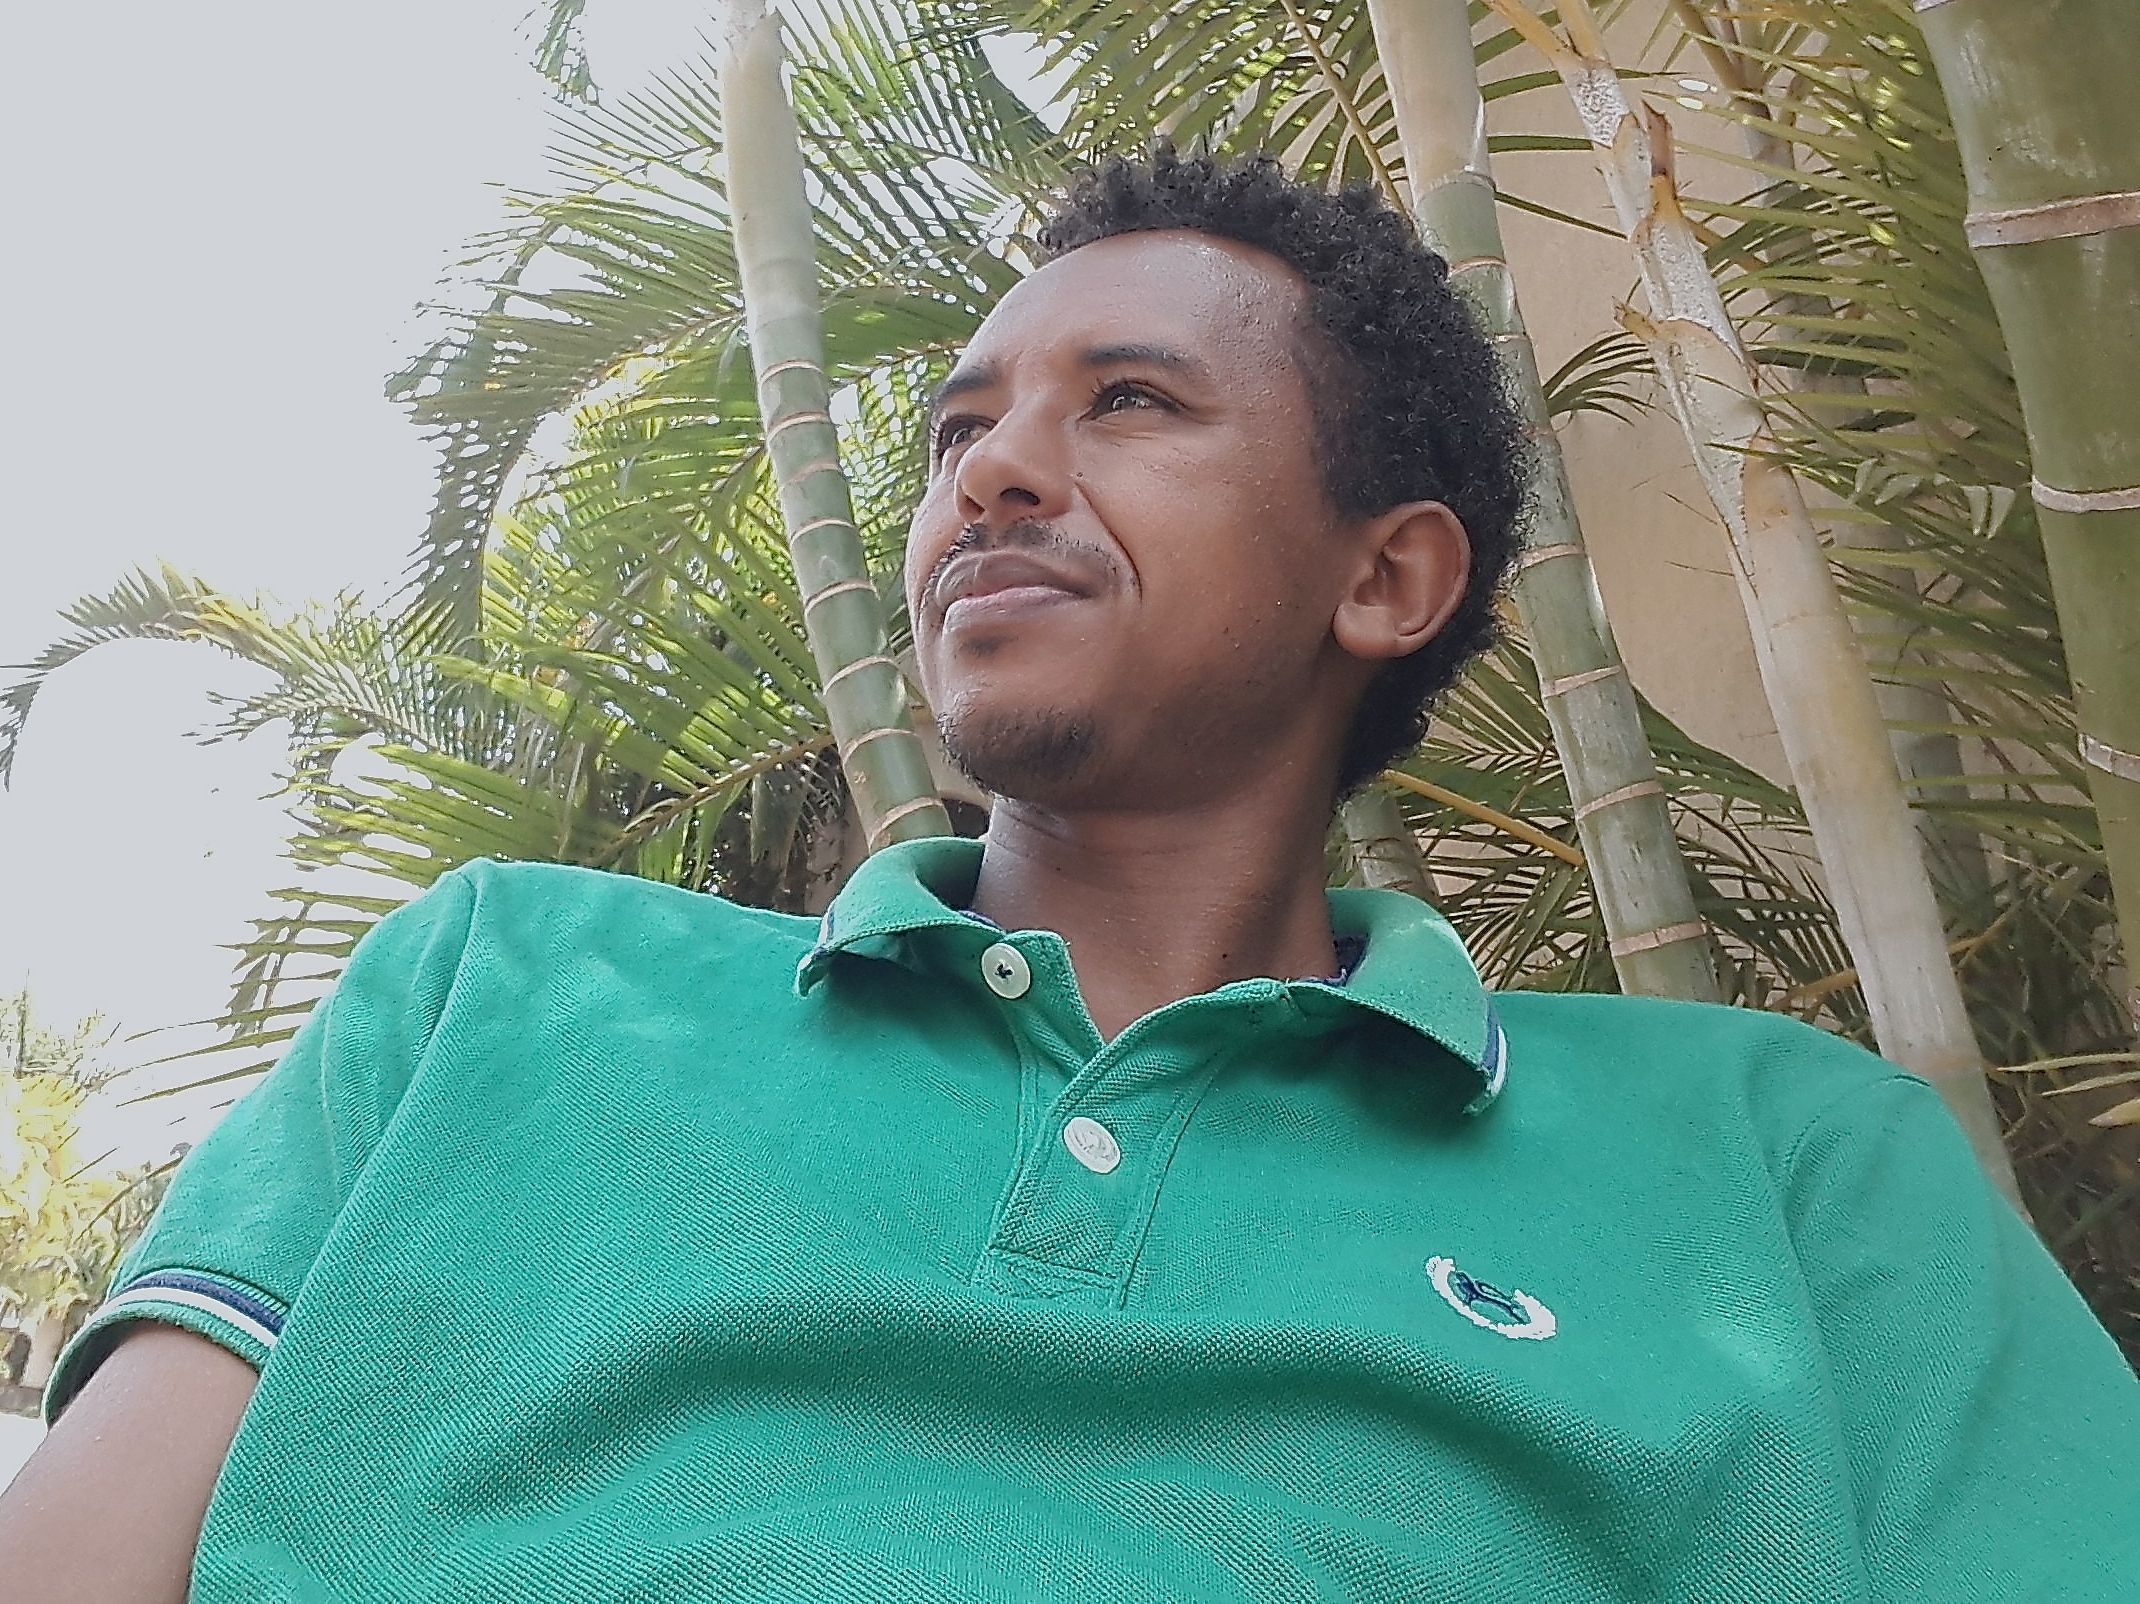 Project Exile: Ethiopia state media reporter chased from